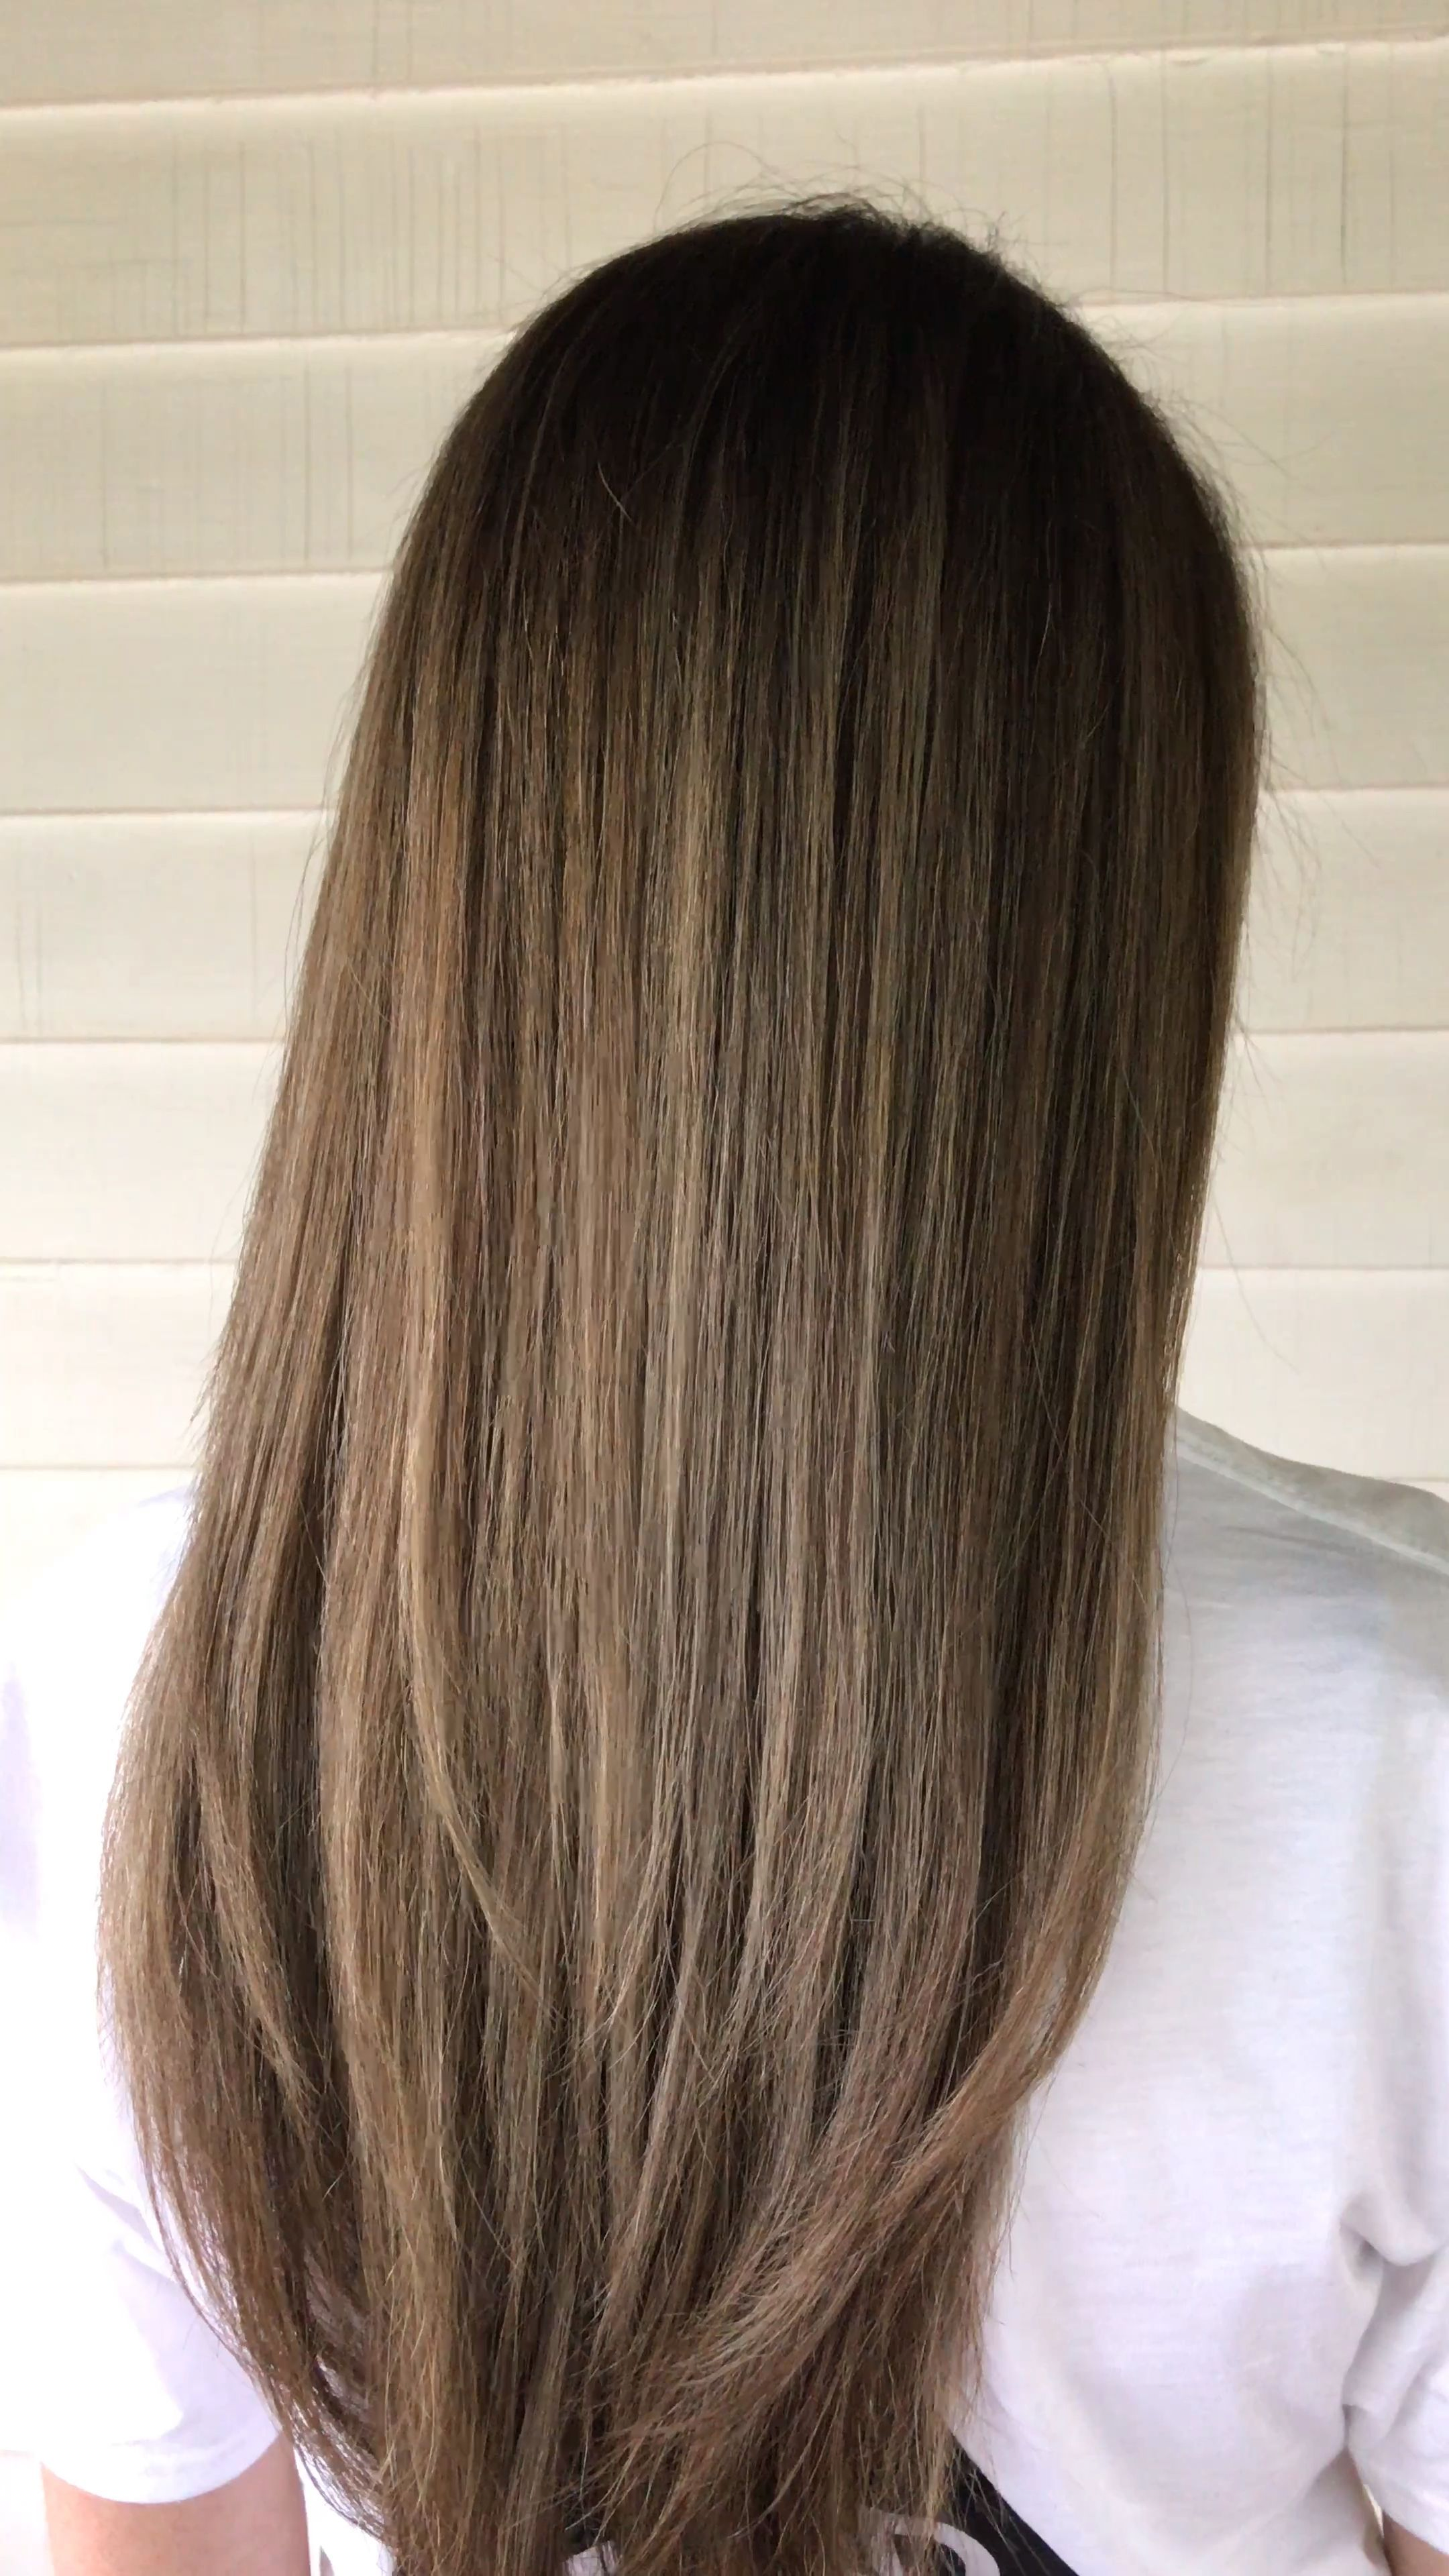 Ash blonde beige balayage on long layered hair, #Ash #Balayage